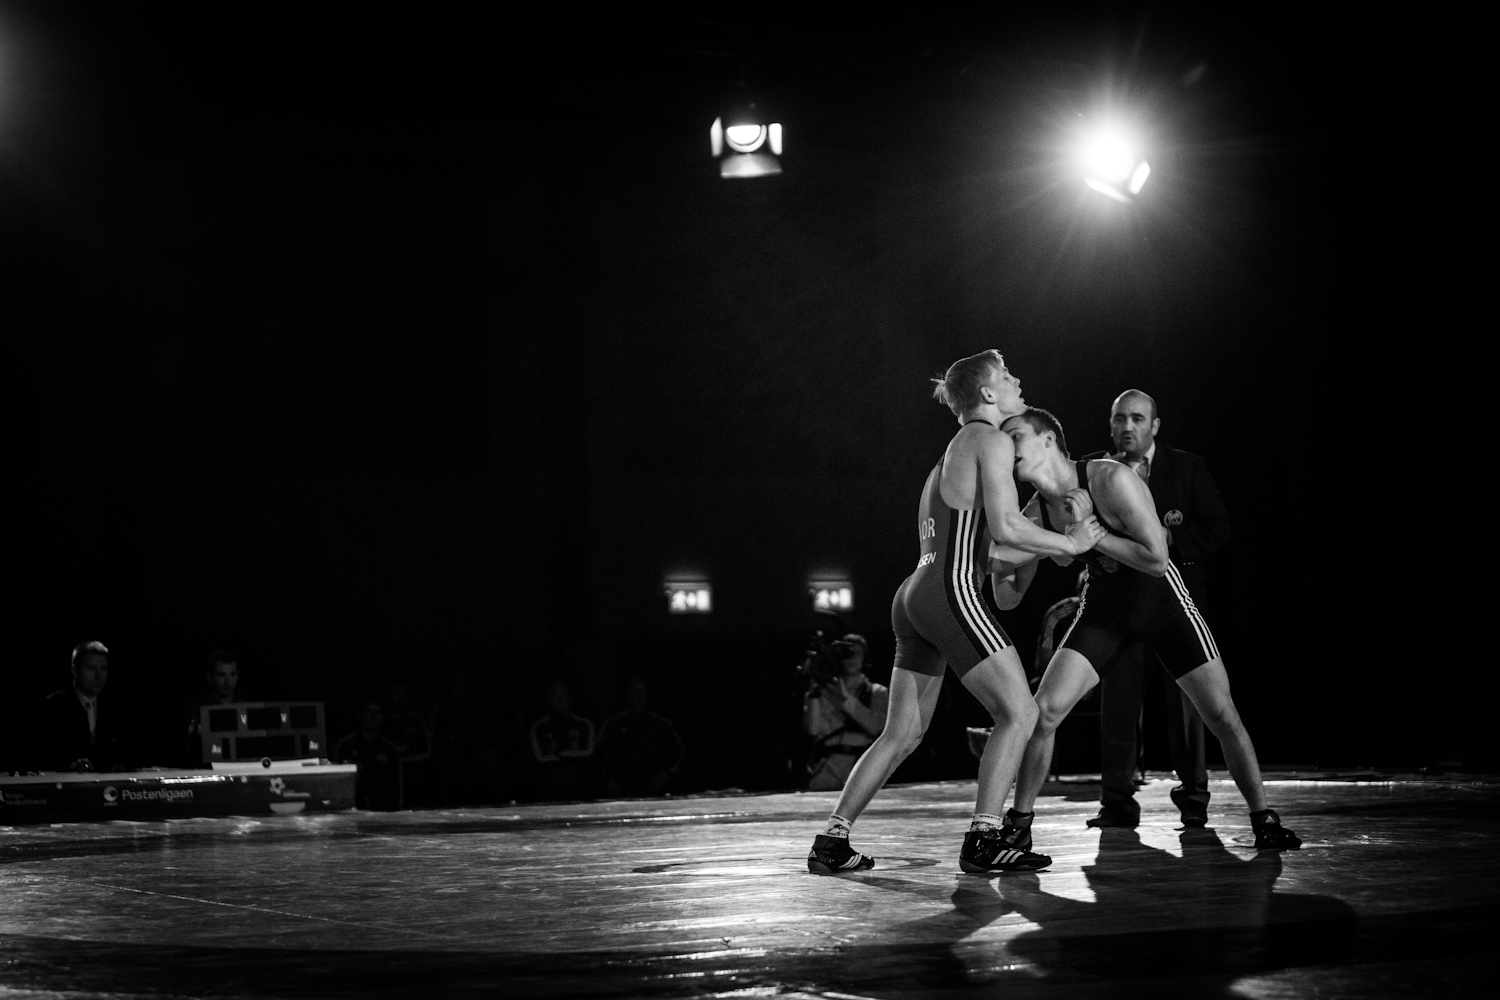 From the national wrestling match between Norway and Hungary in Bodø